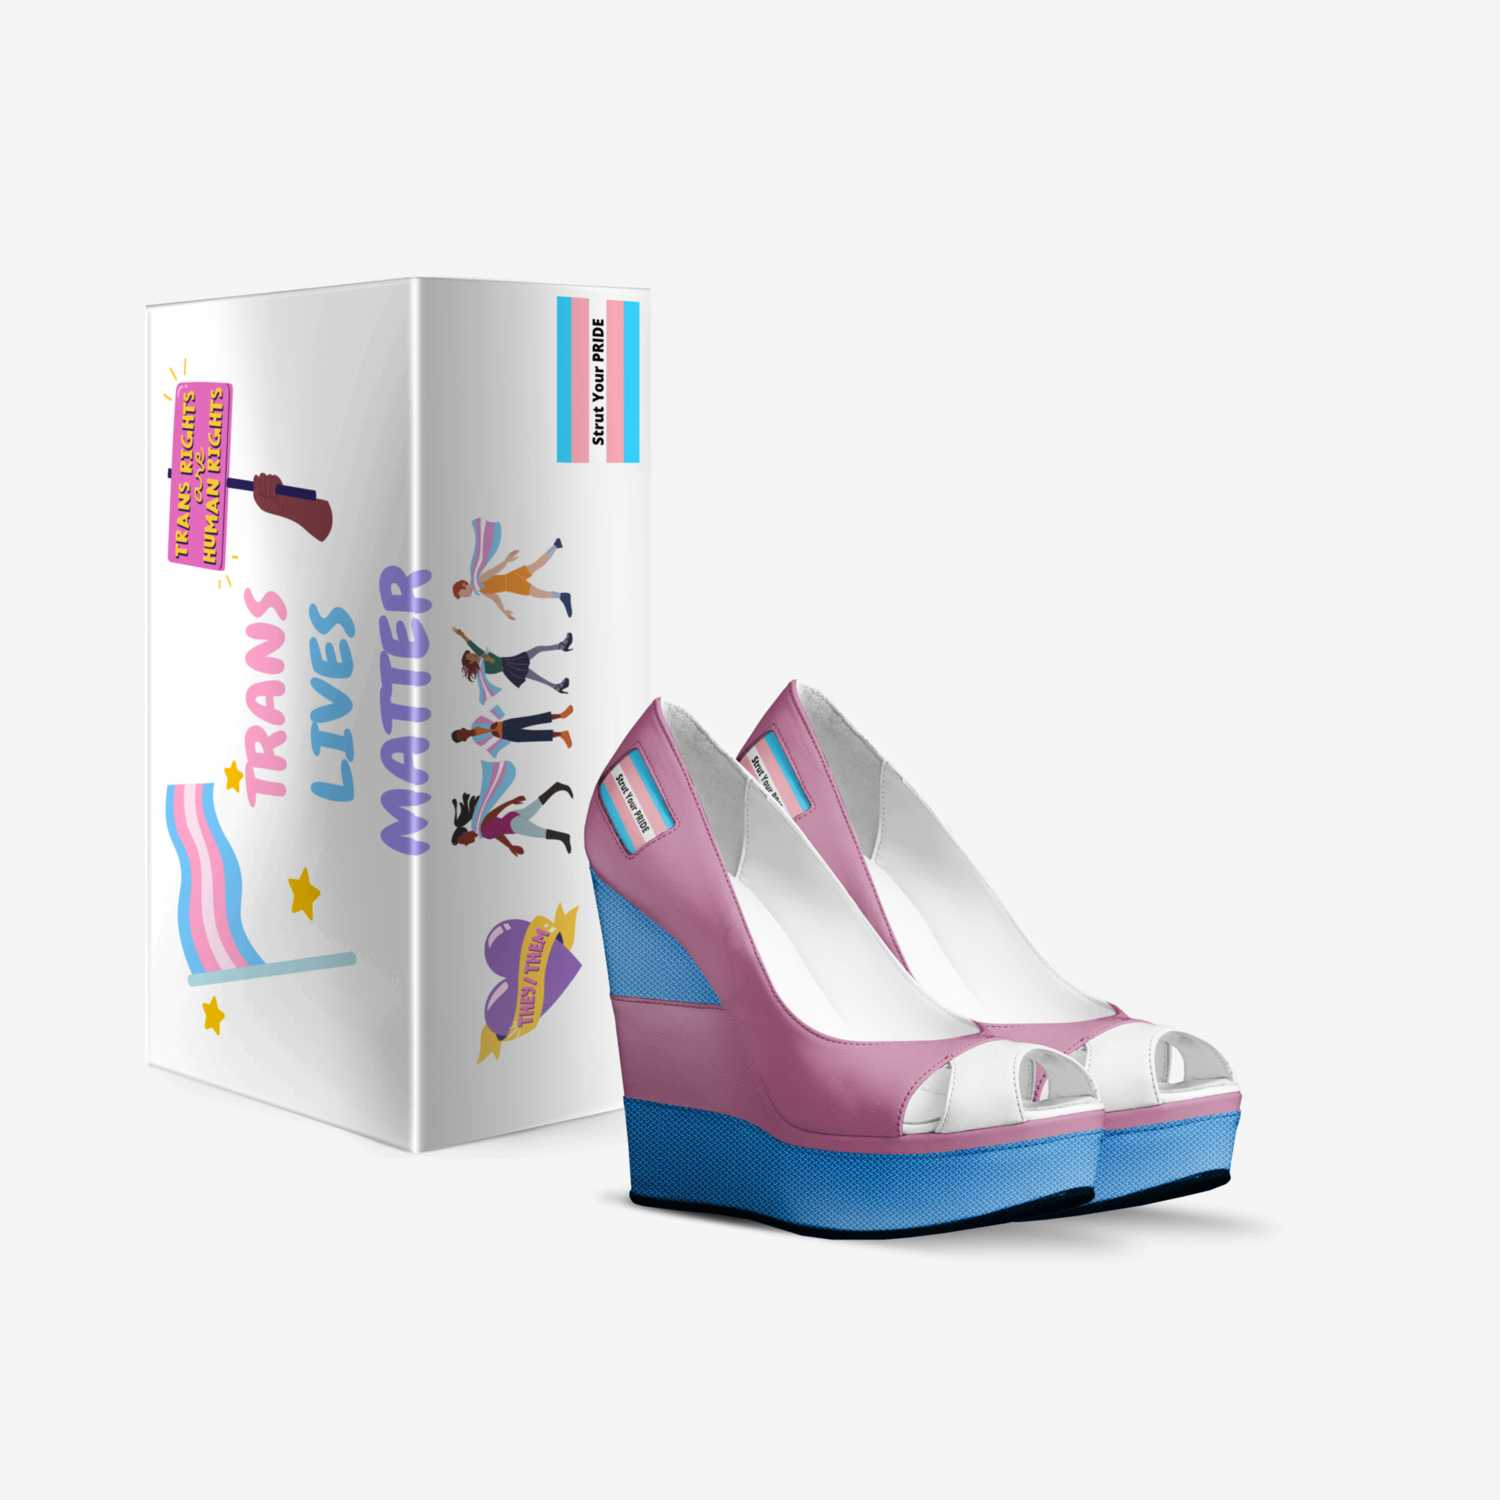 Strut Your Pride custom made in Italy shoes by Jevon Martin | Box view